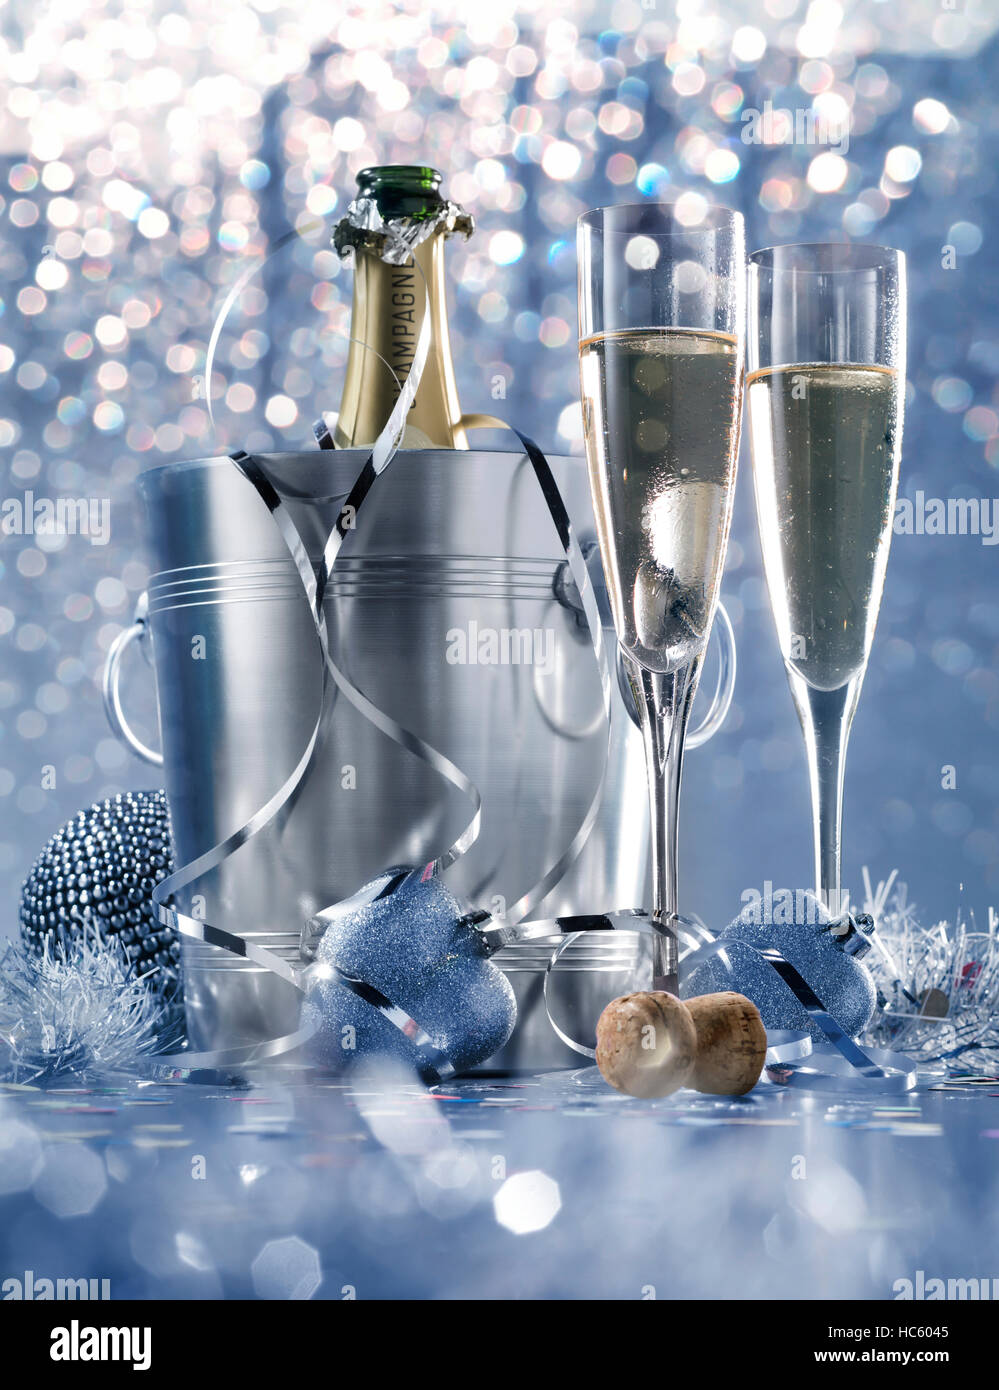 dim light white silver and blue romantic new year eve or christmas table in a luxury restaurant with champagne - Stock Image